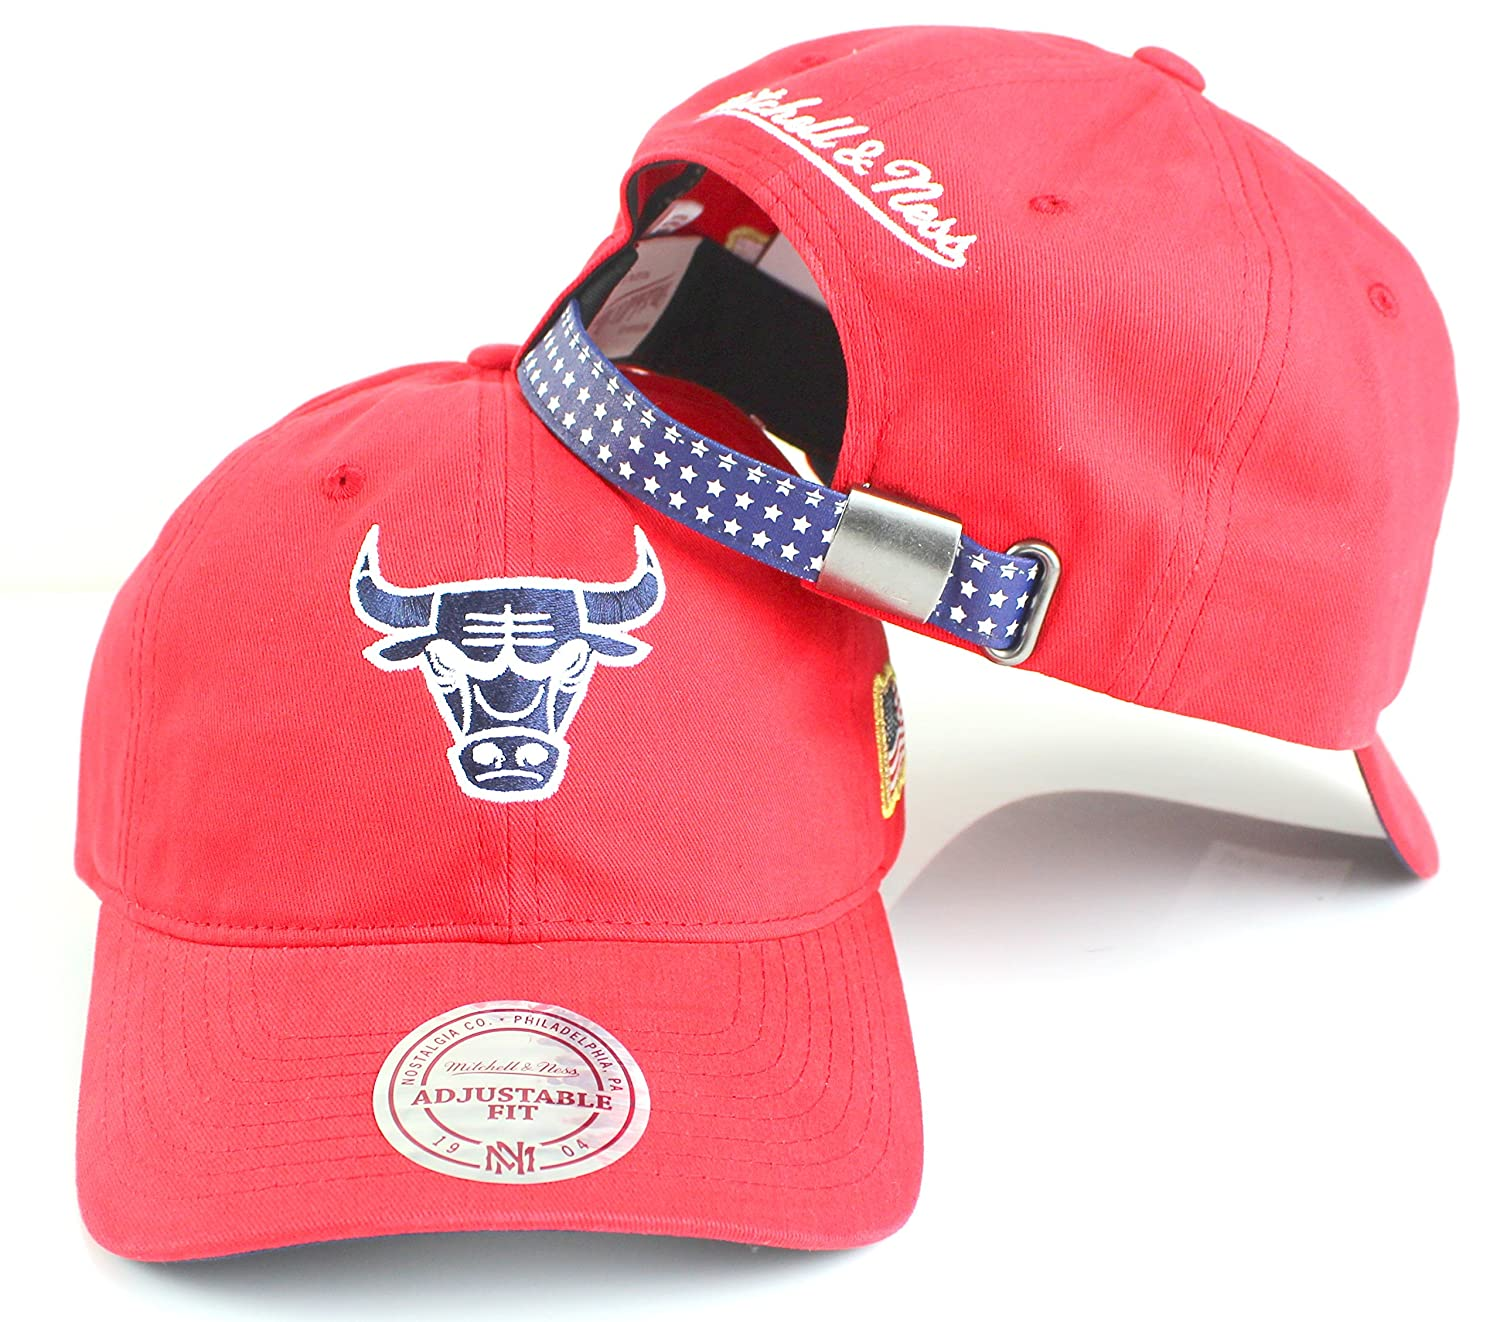 Mitchell /& Ness NBA Stars Washed Cotton Dad Hat Red